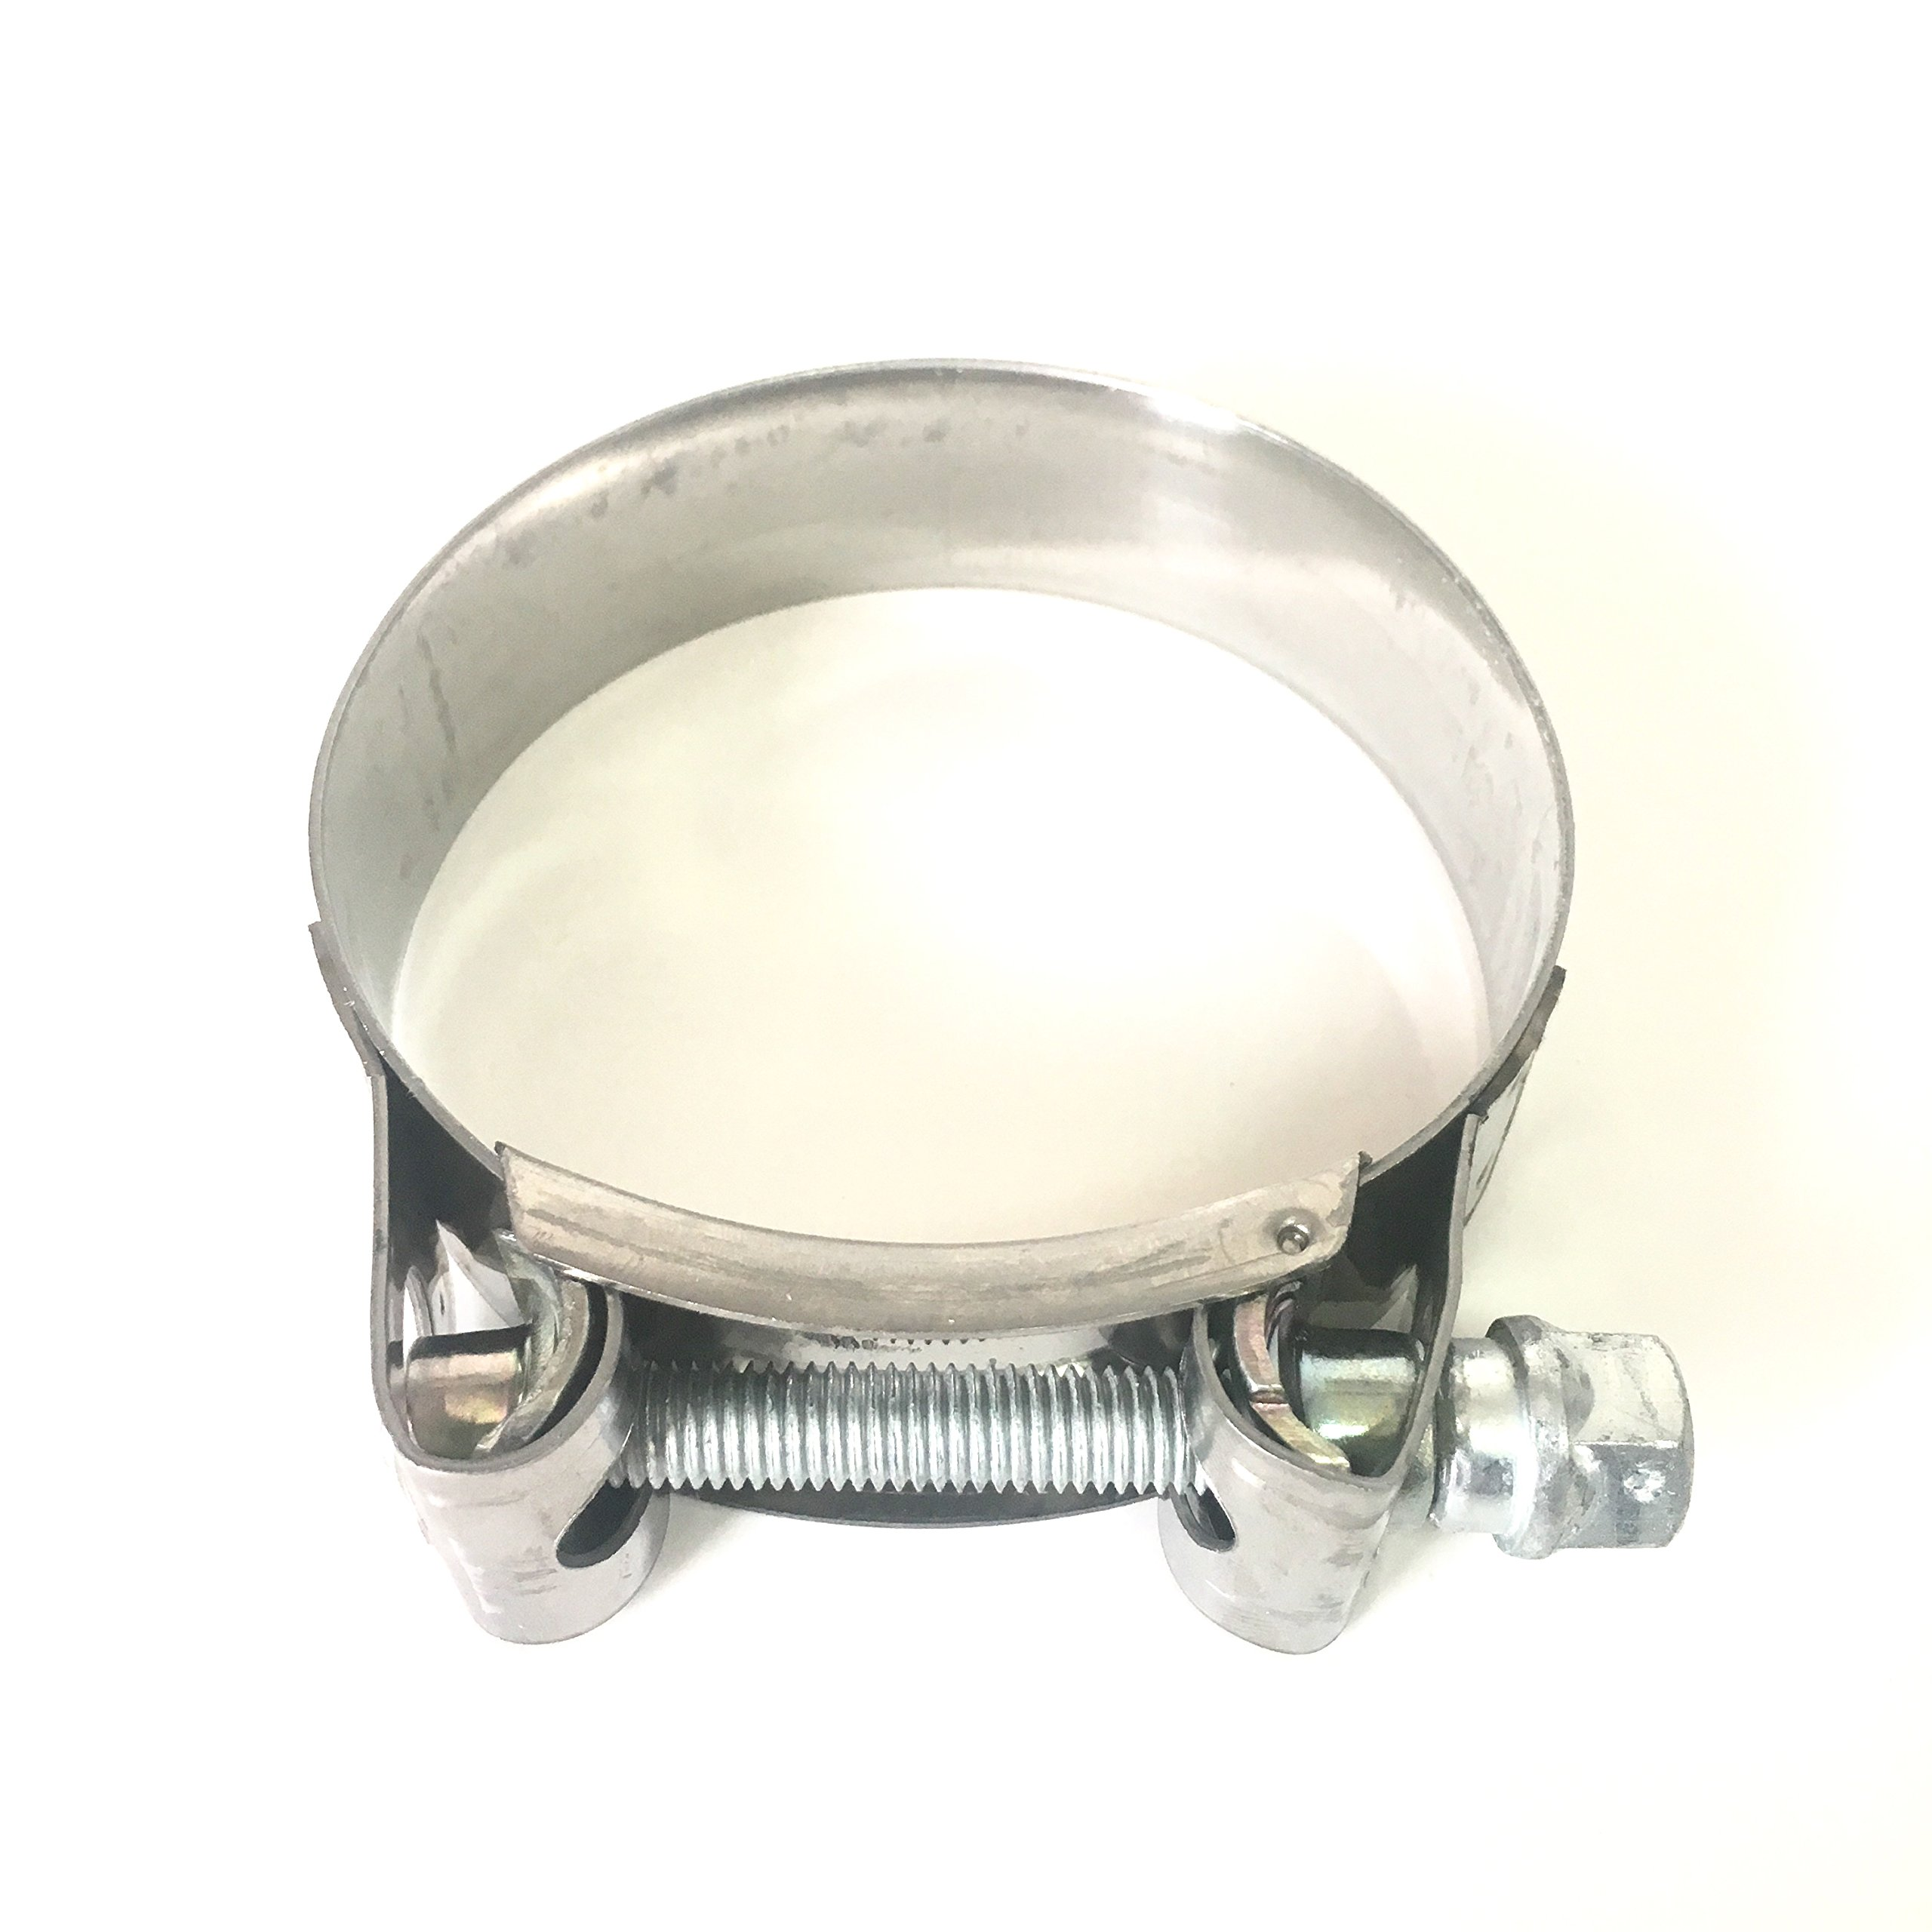 Mikalor - Supra W2 130mm-140mm Stainless Steel 5'' T-Bolt Hose Clamp (Qty1) - 119-12700-1000